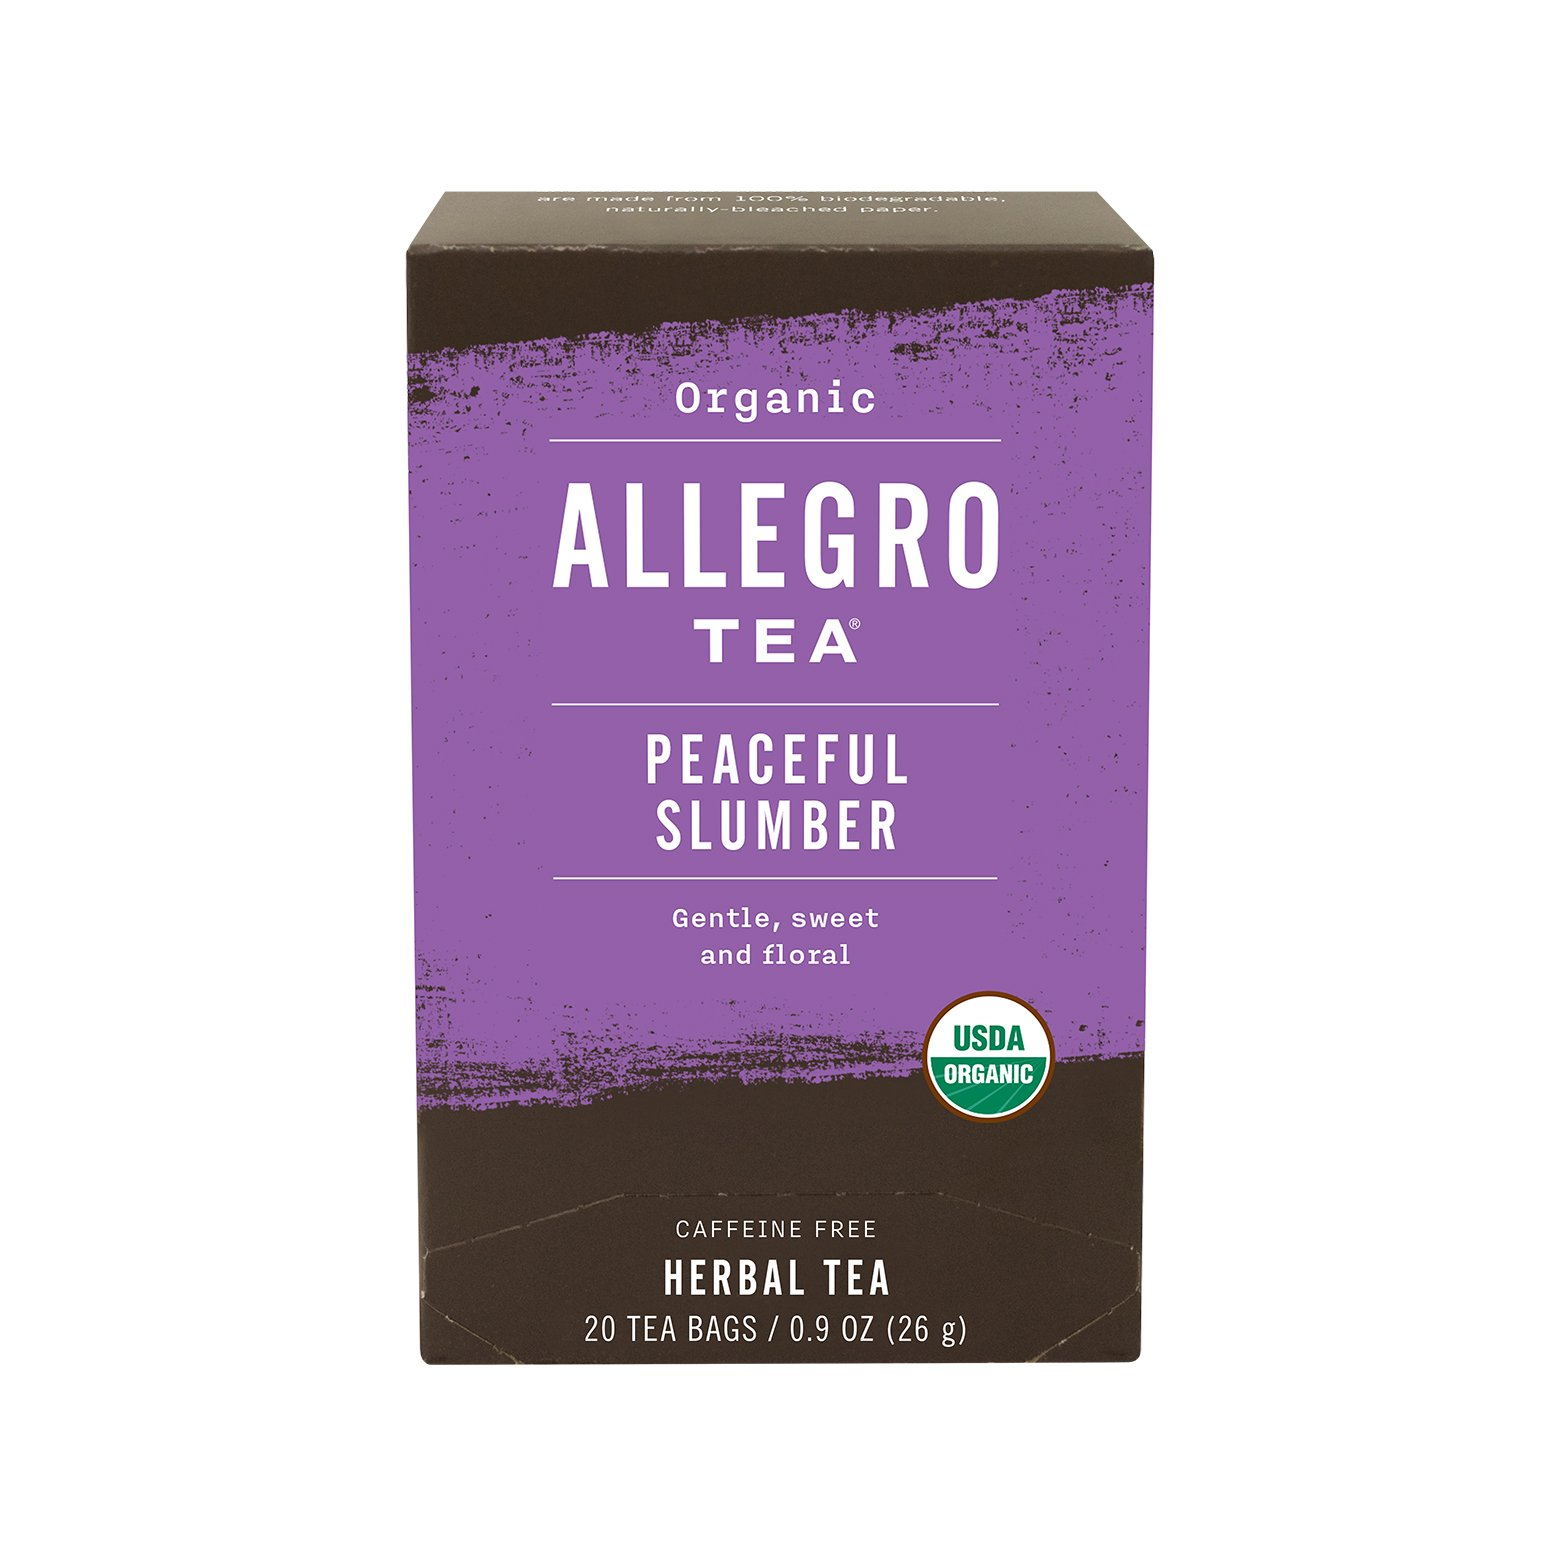 Allegro Tea, Organic Peaceful Slumber Tea Bags, 20 ct